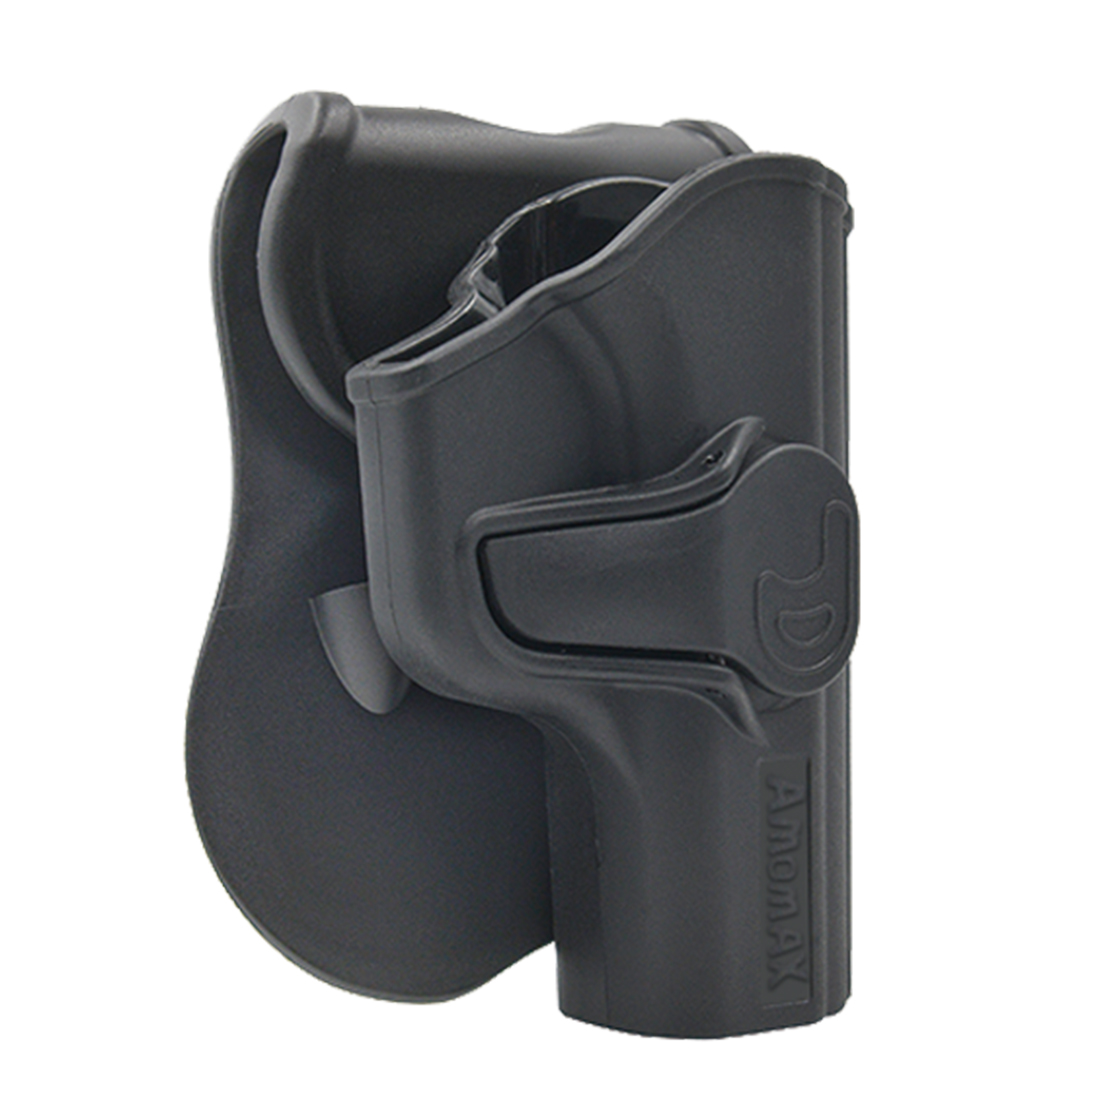 Amomax Adjustable Tactical Holster For Makarov PM - Right-handed Black(Standard Only With Waist Plate, No Other Accessories)